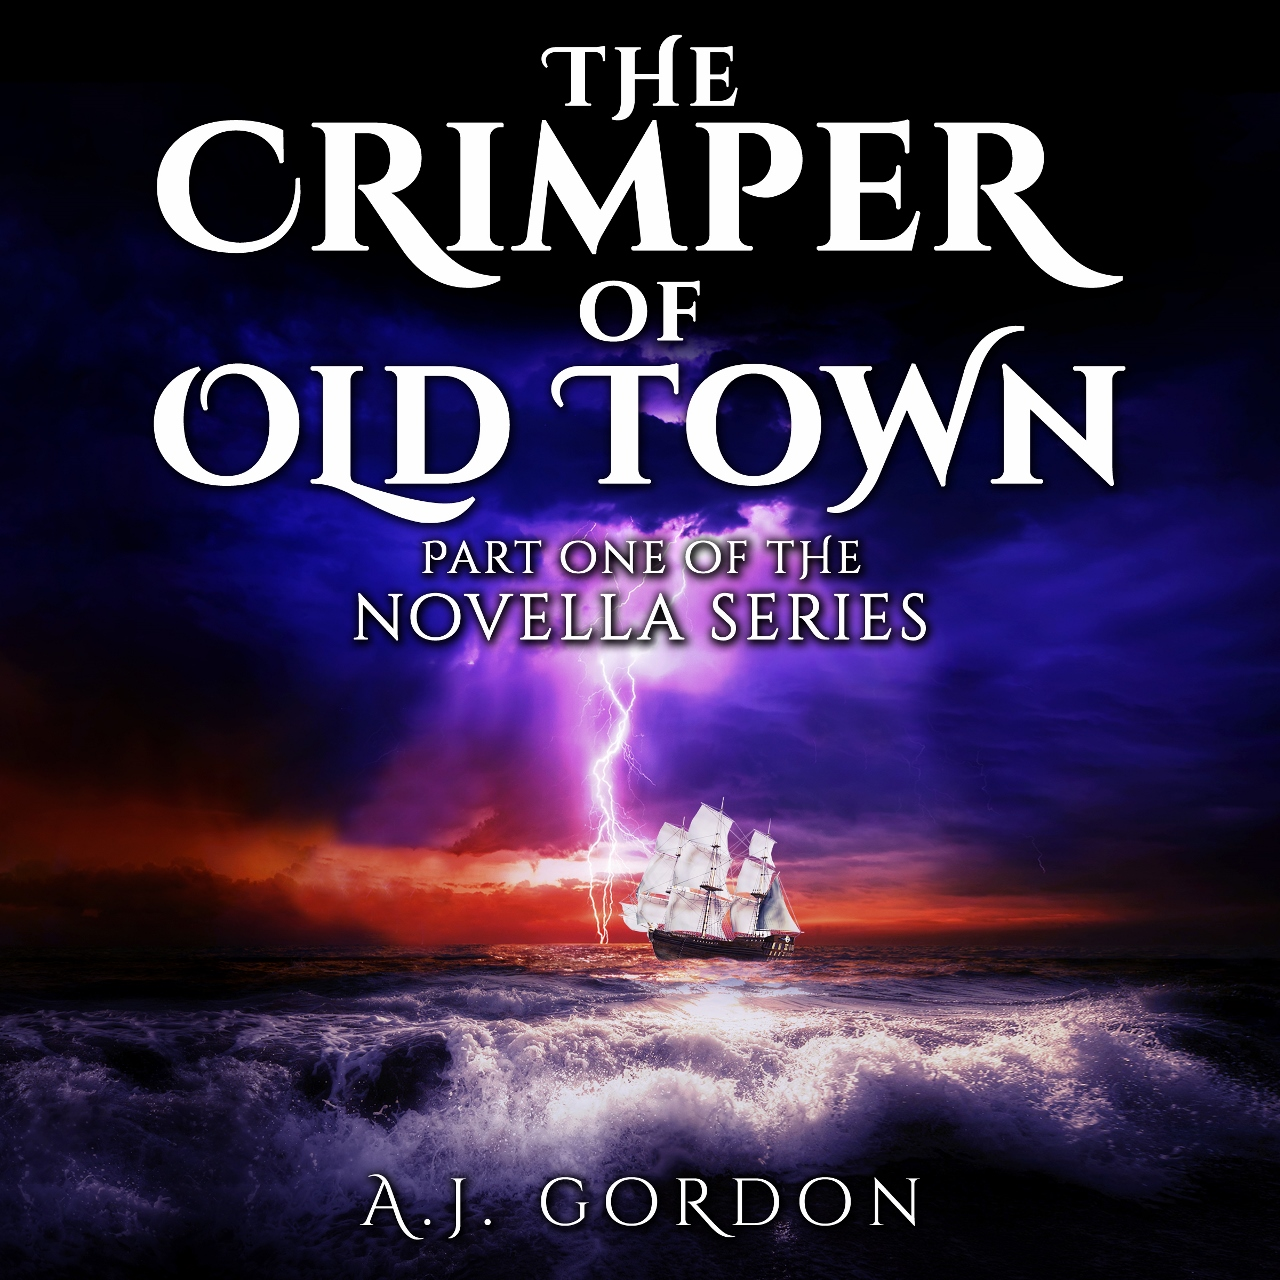 Loaded Image Entertainment Announces the Launch of The First Part of the Sizzling Novella Series, The Crimper of Old Town